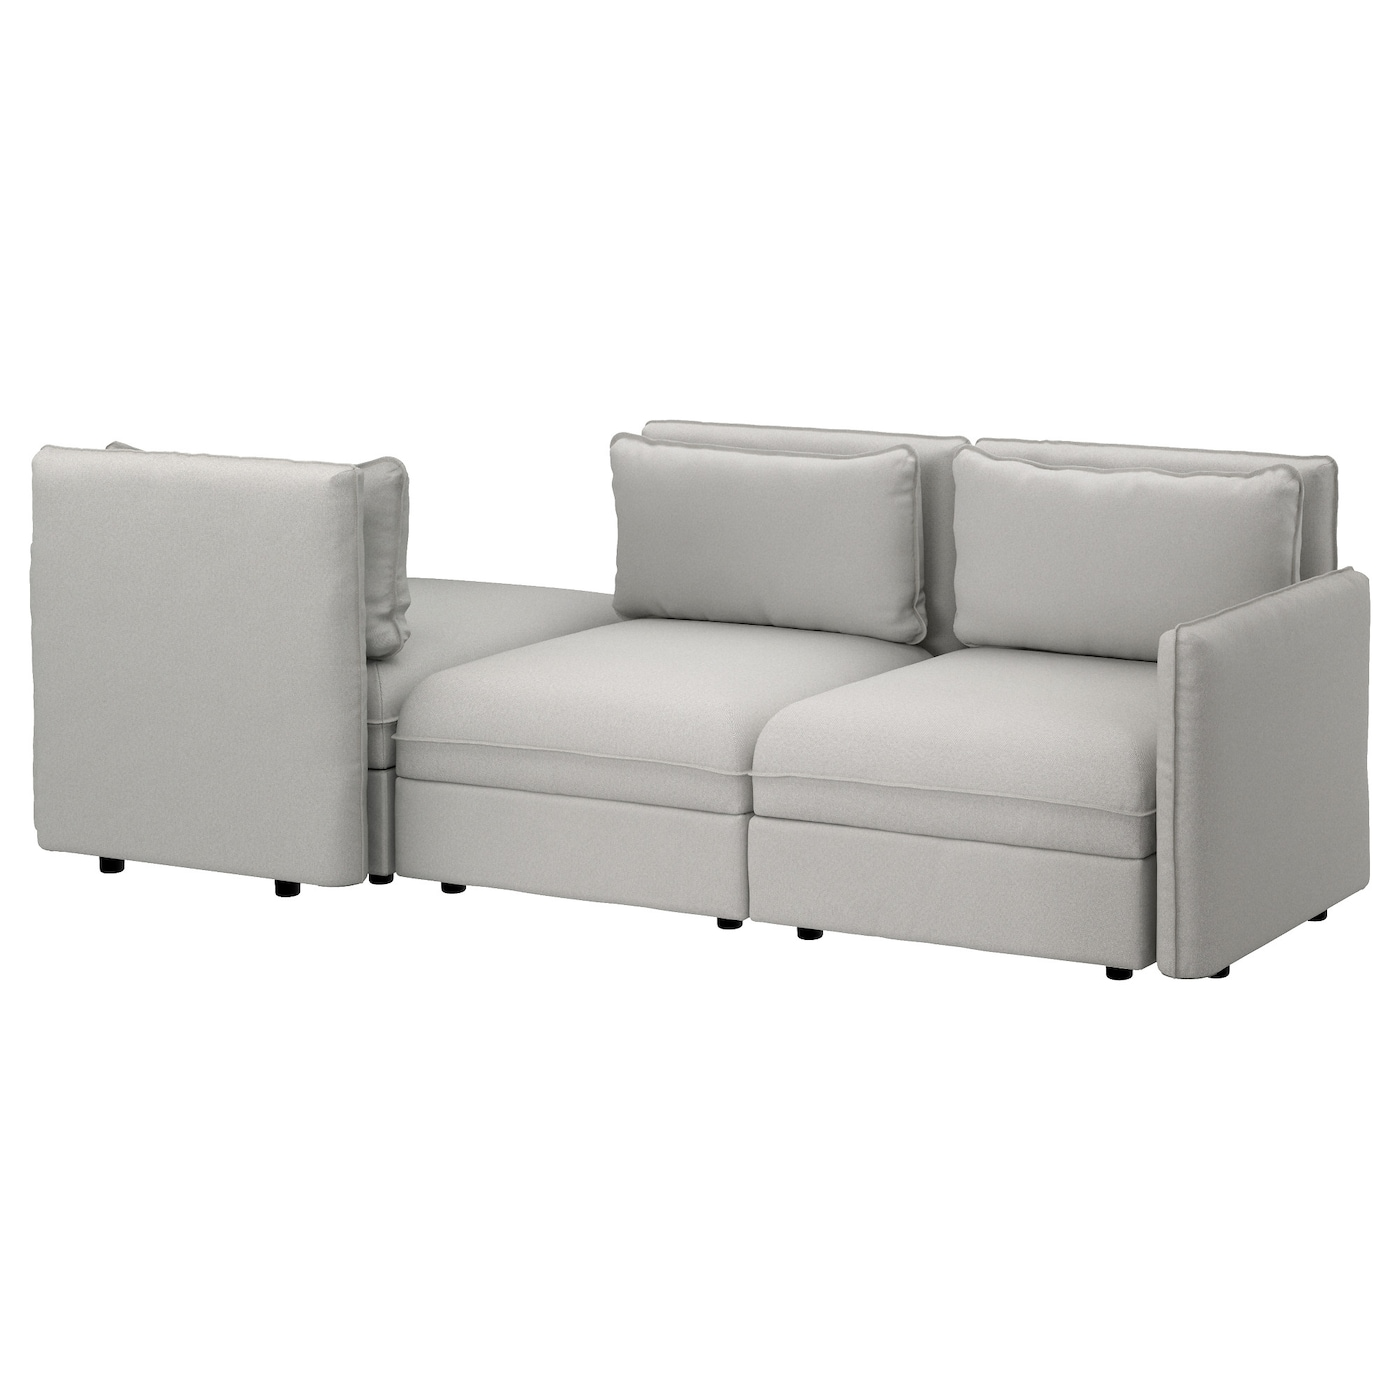 IKEA VALLENTUNA canapé 3 places + couch